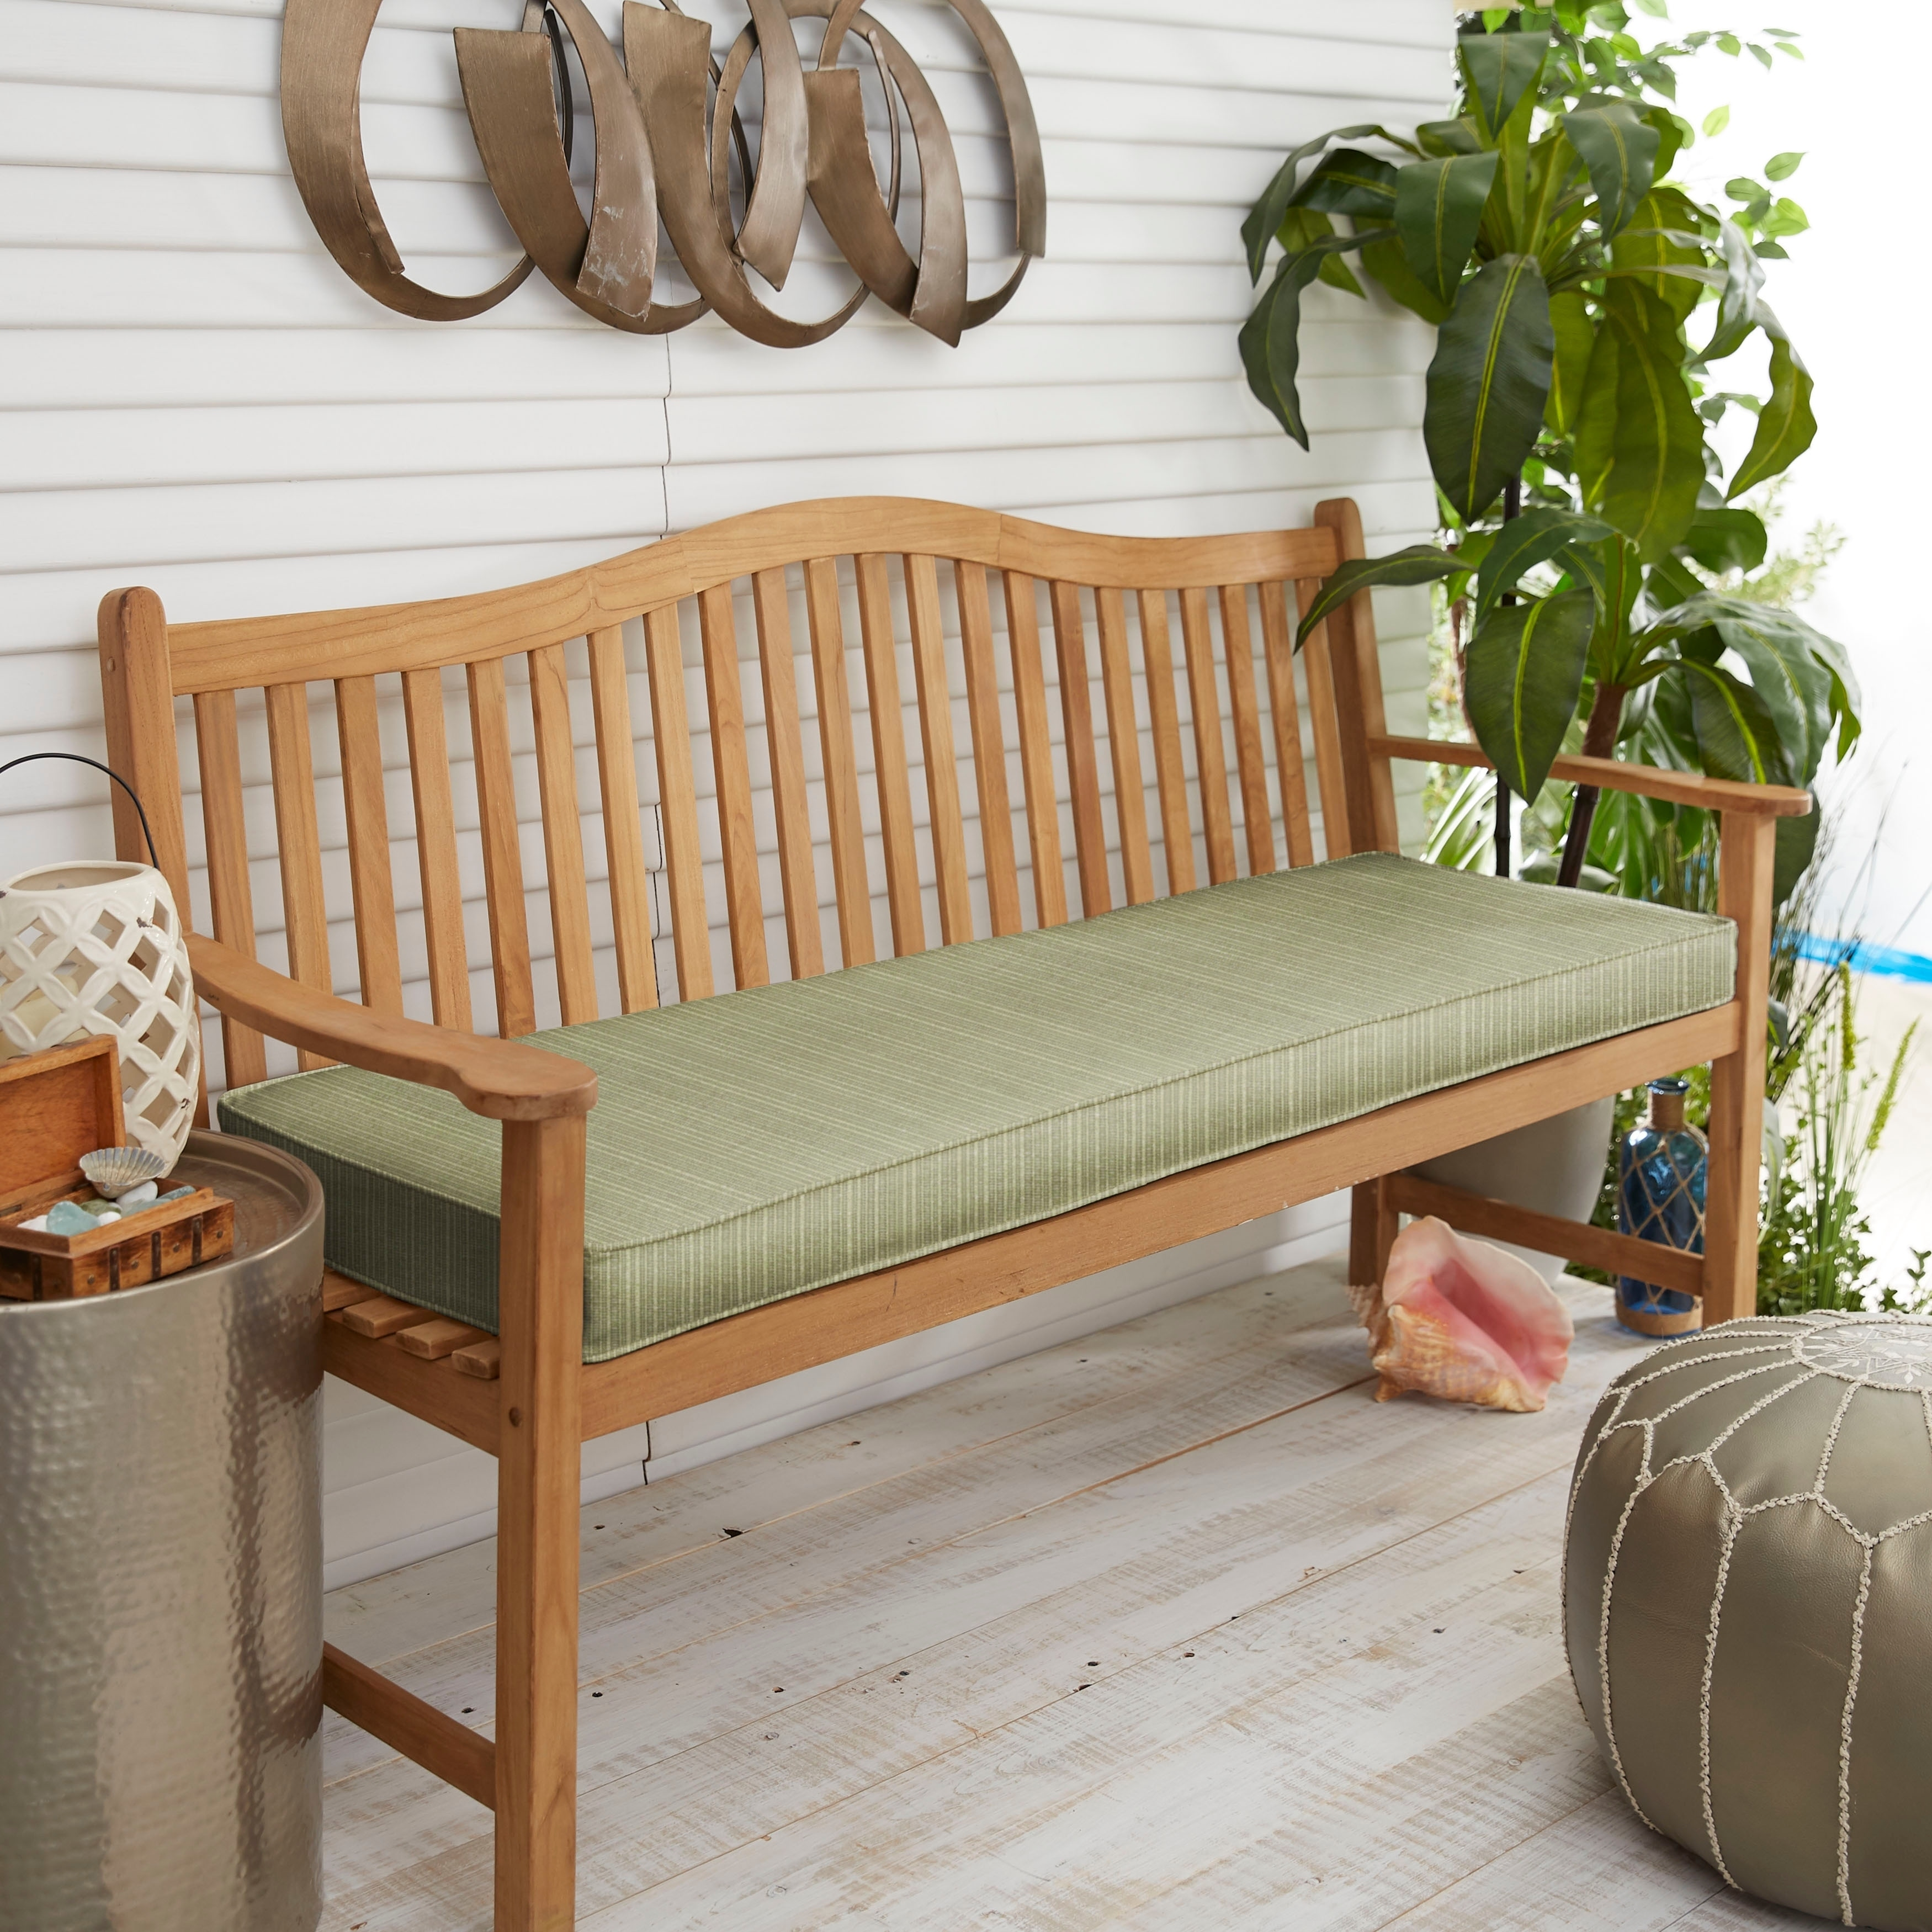 Details About Sunbrella Indoor Outdoor Textured Neutral 48 Inch Bench Cushion